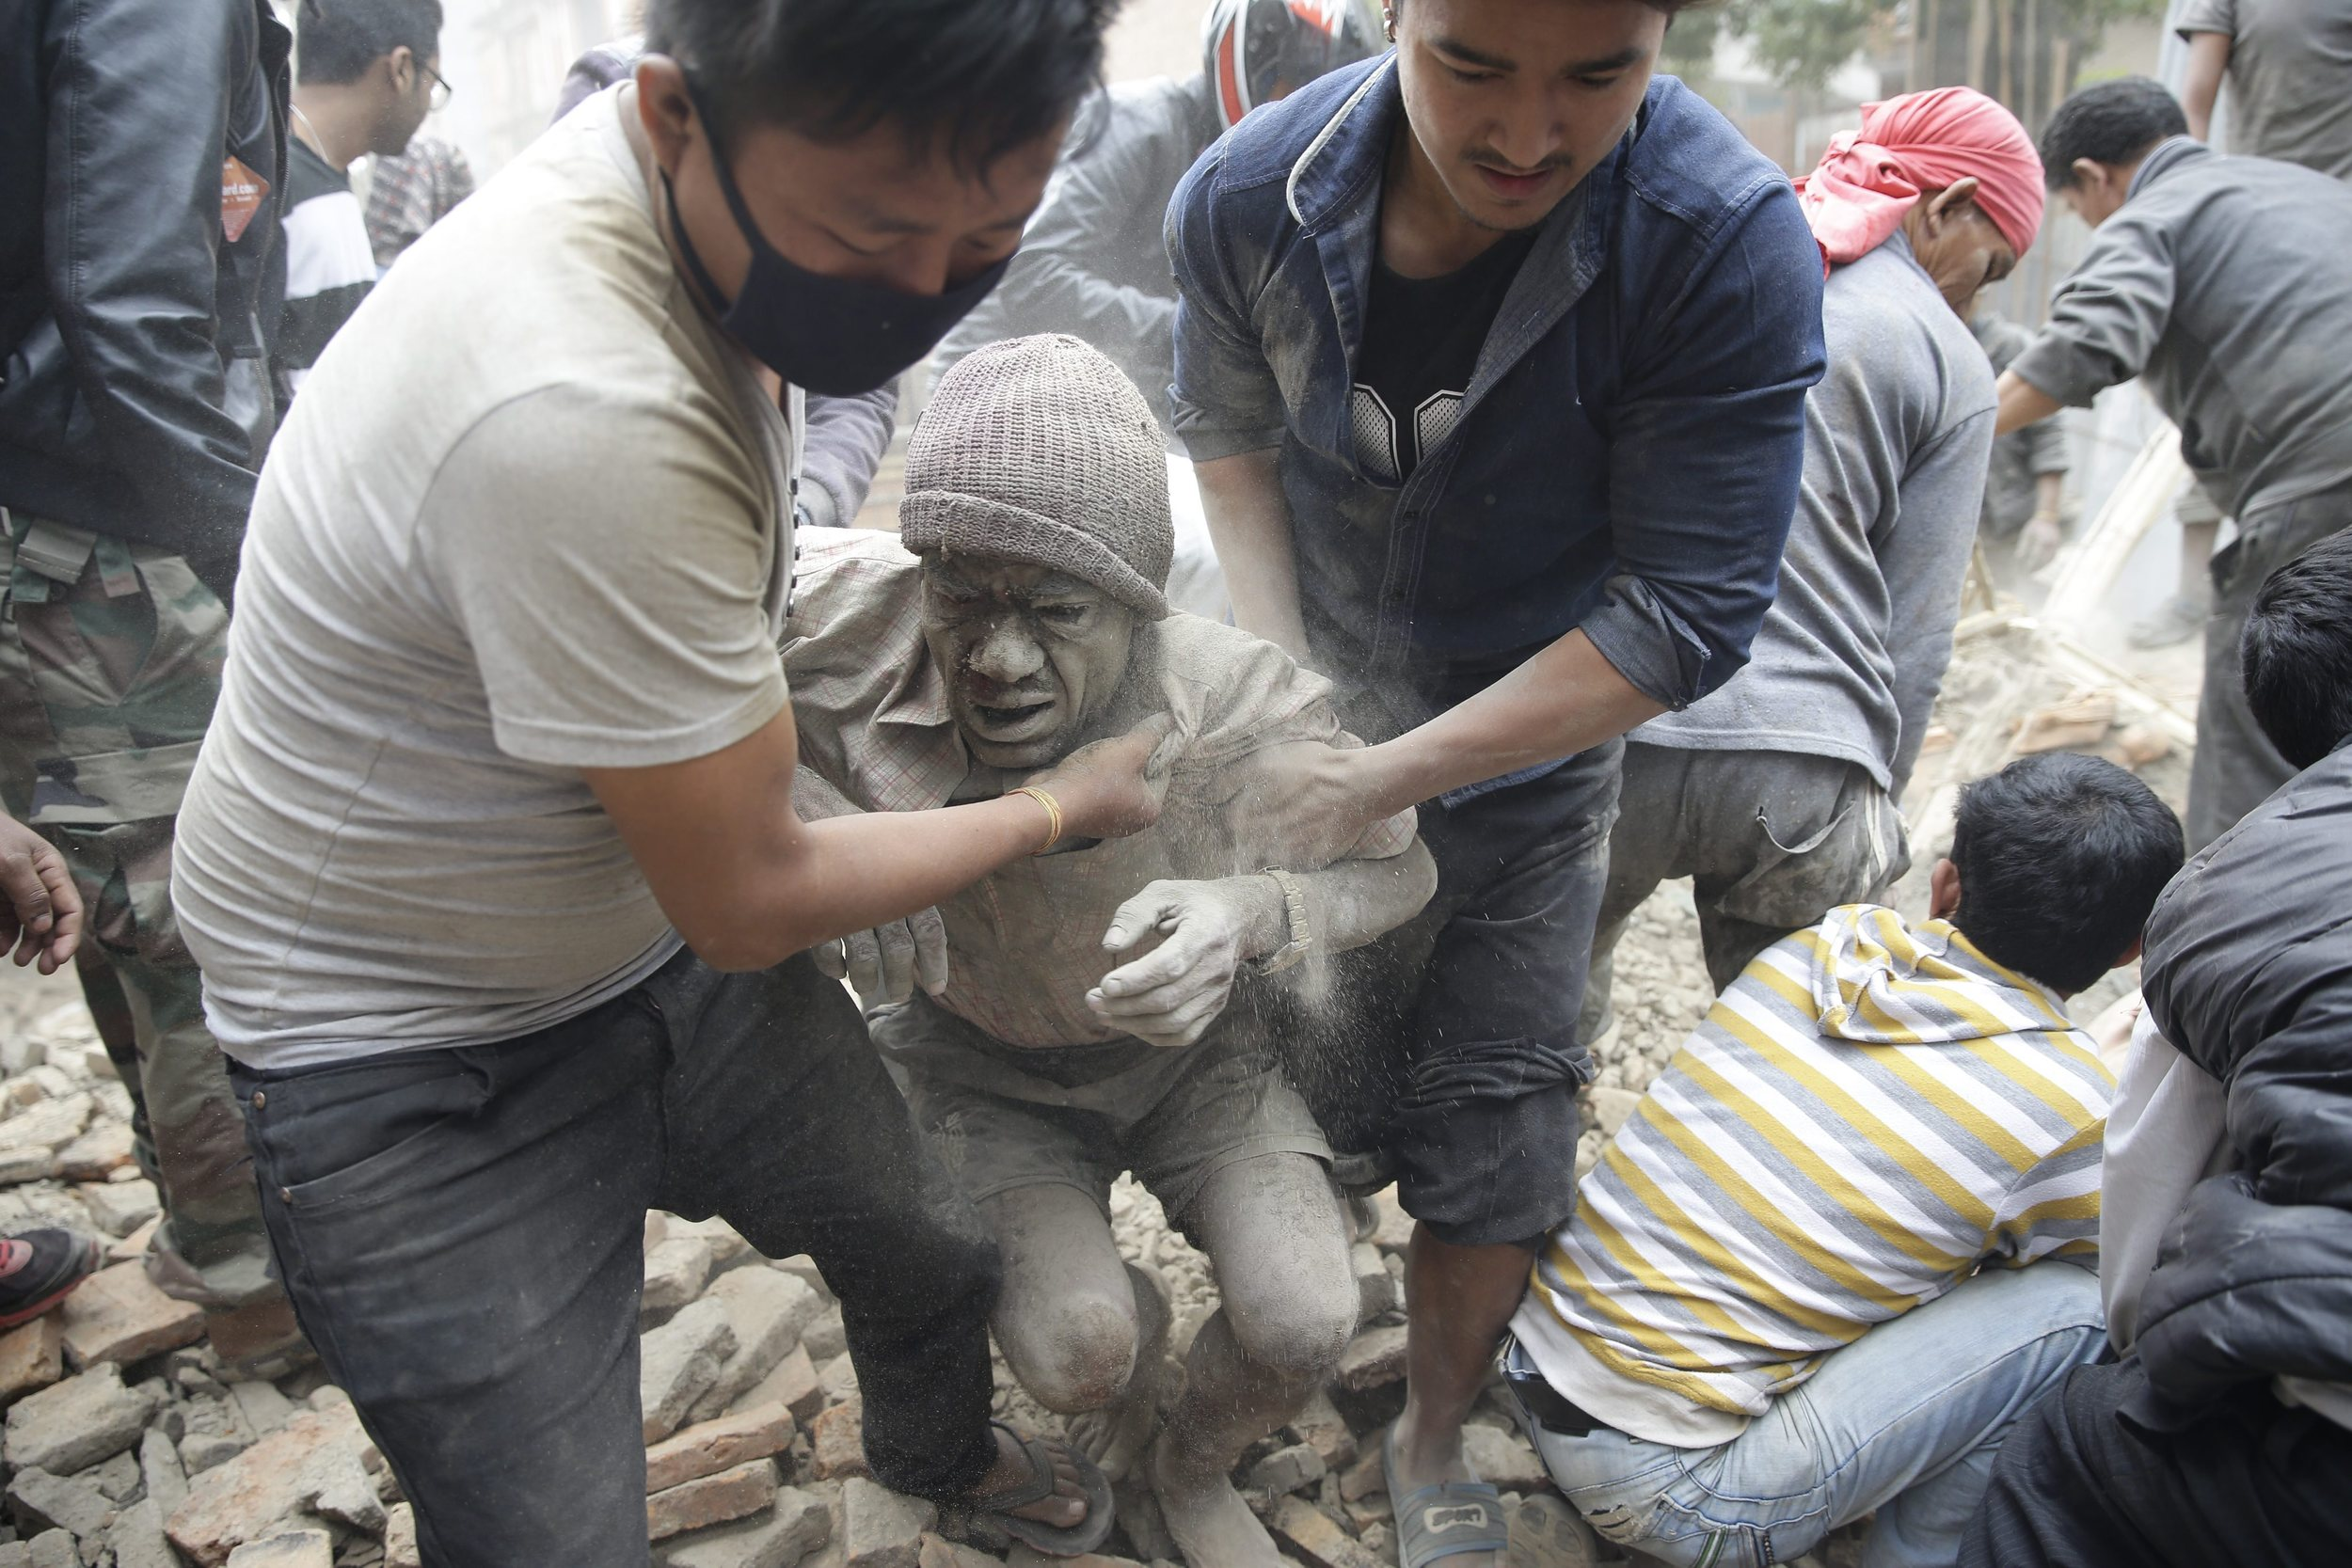 People free a man from the rubble of a destroyed building.     (Photo: Narendra Shrestha, European Pressphoto Agency)